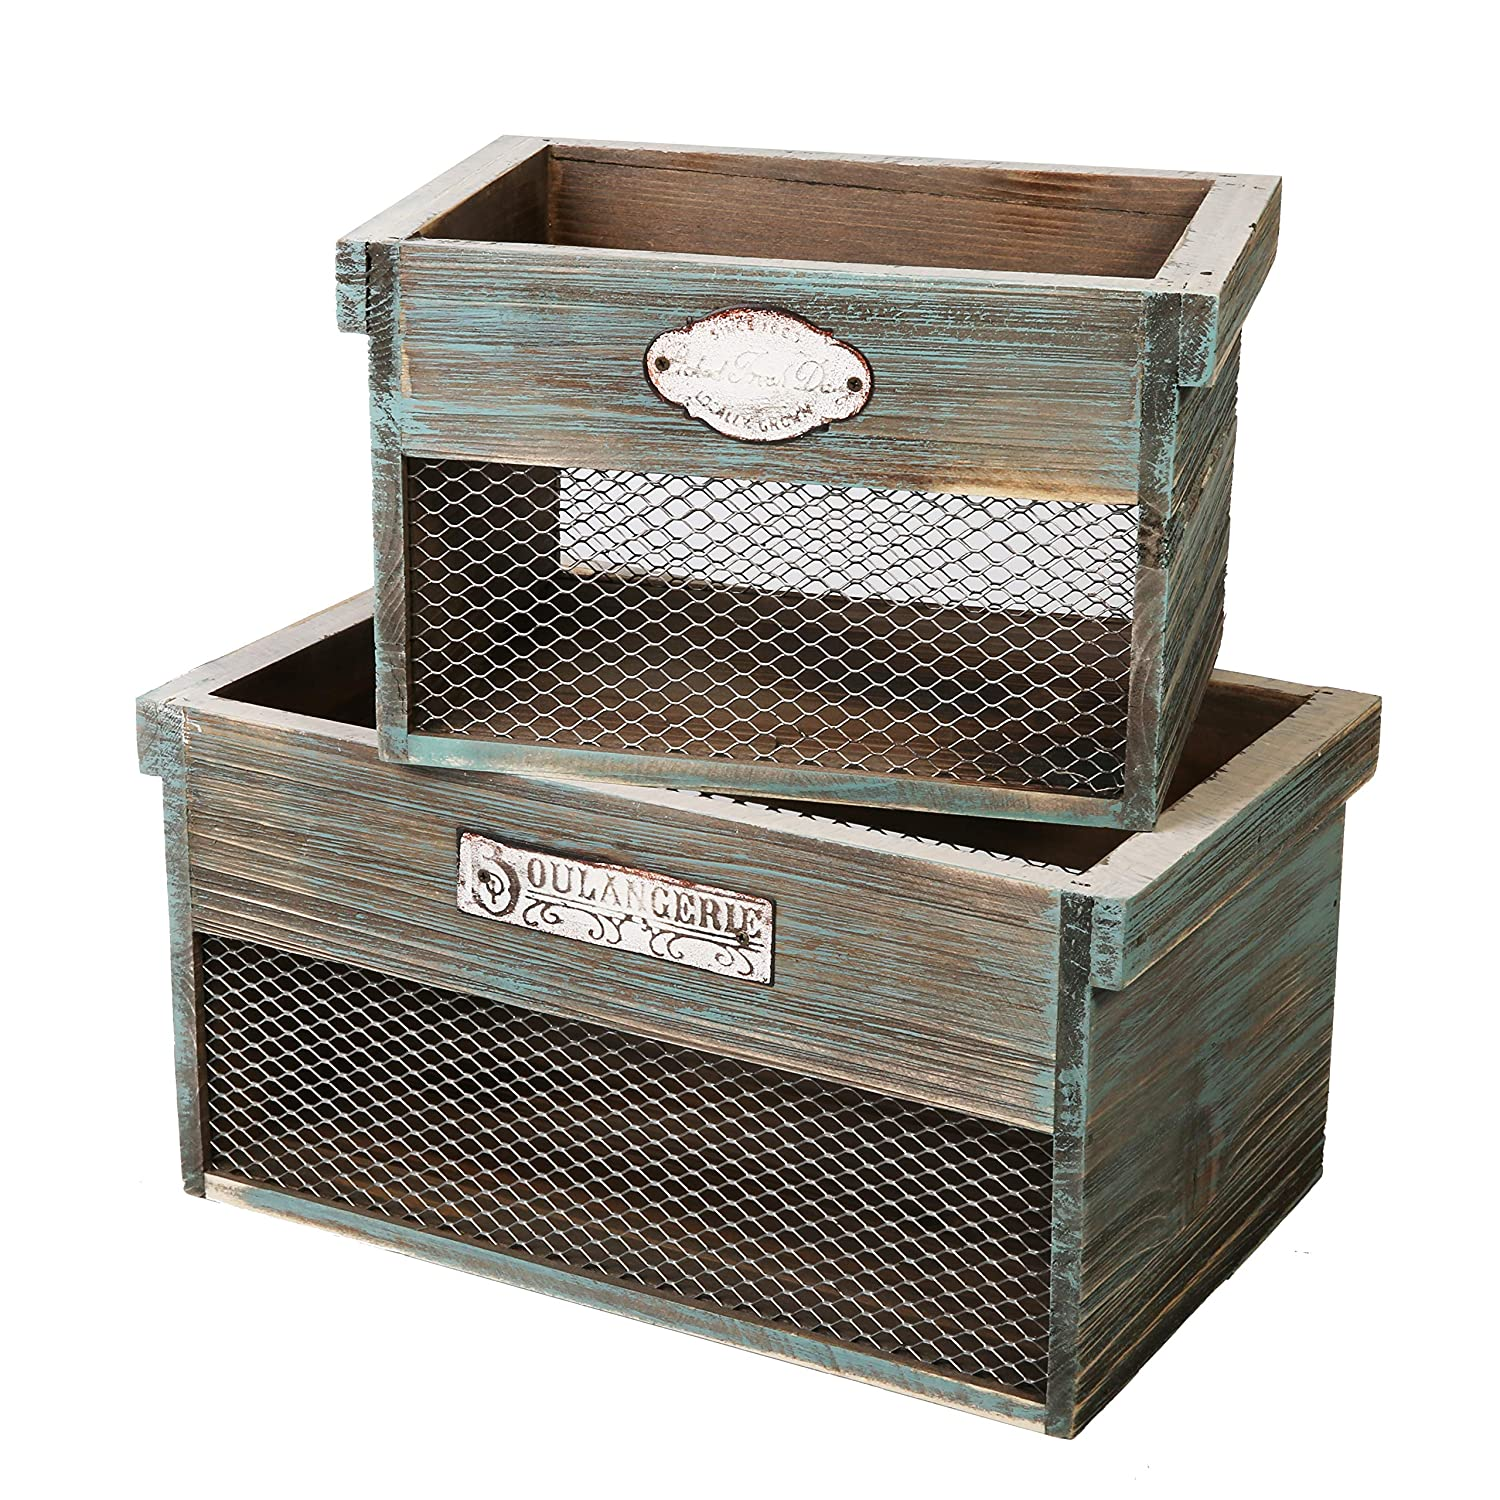 SLPR Wooden Crate with Metal Plate (Set of 2) | Rustic Farmhouse Country Style Antique Old Fashioned Perfect for Floral Arrangements Gardening Wedding Vintage Country Chic Wood and Wire Box